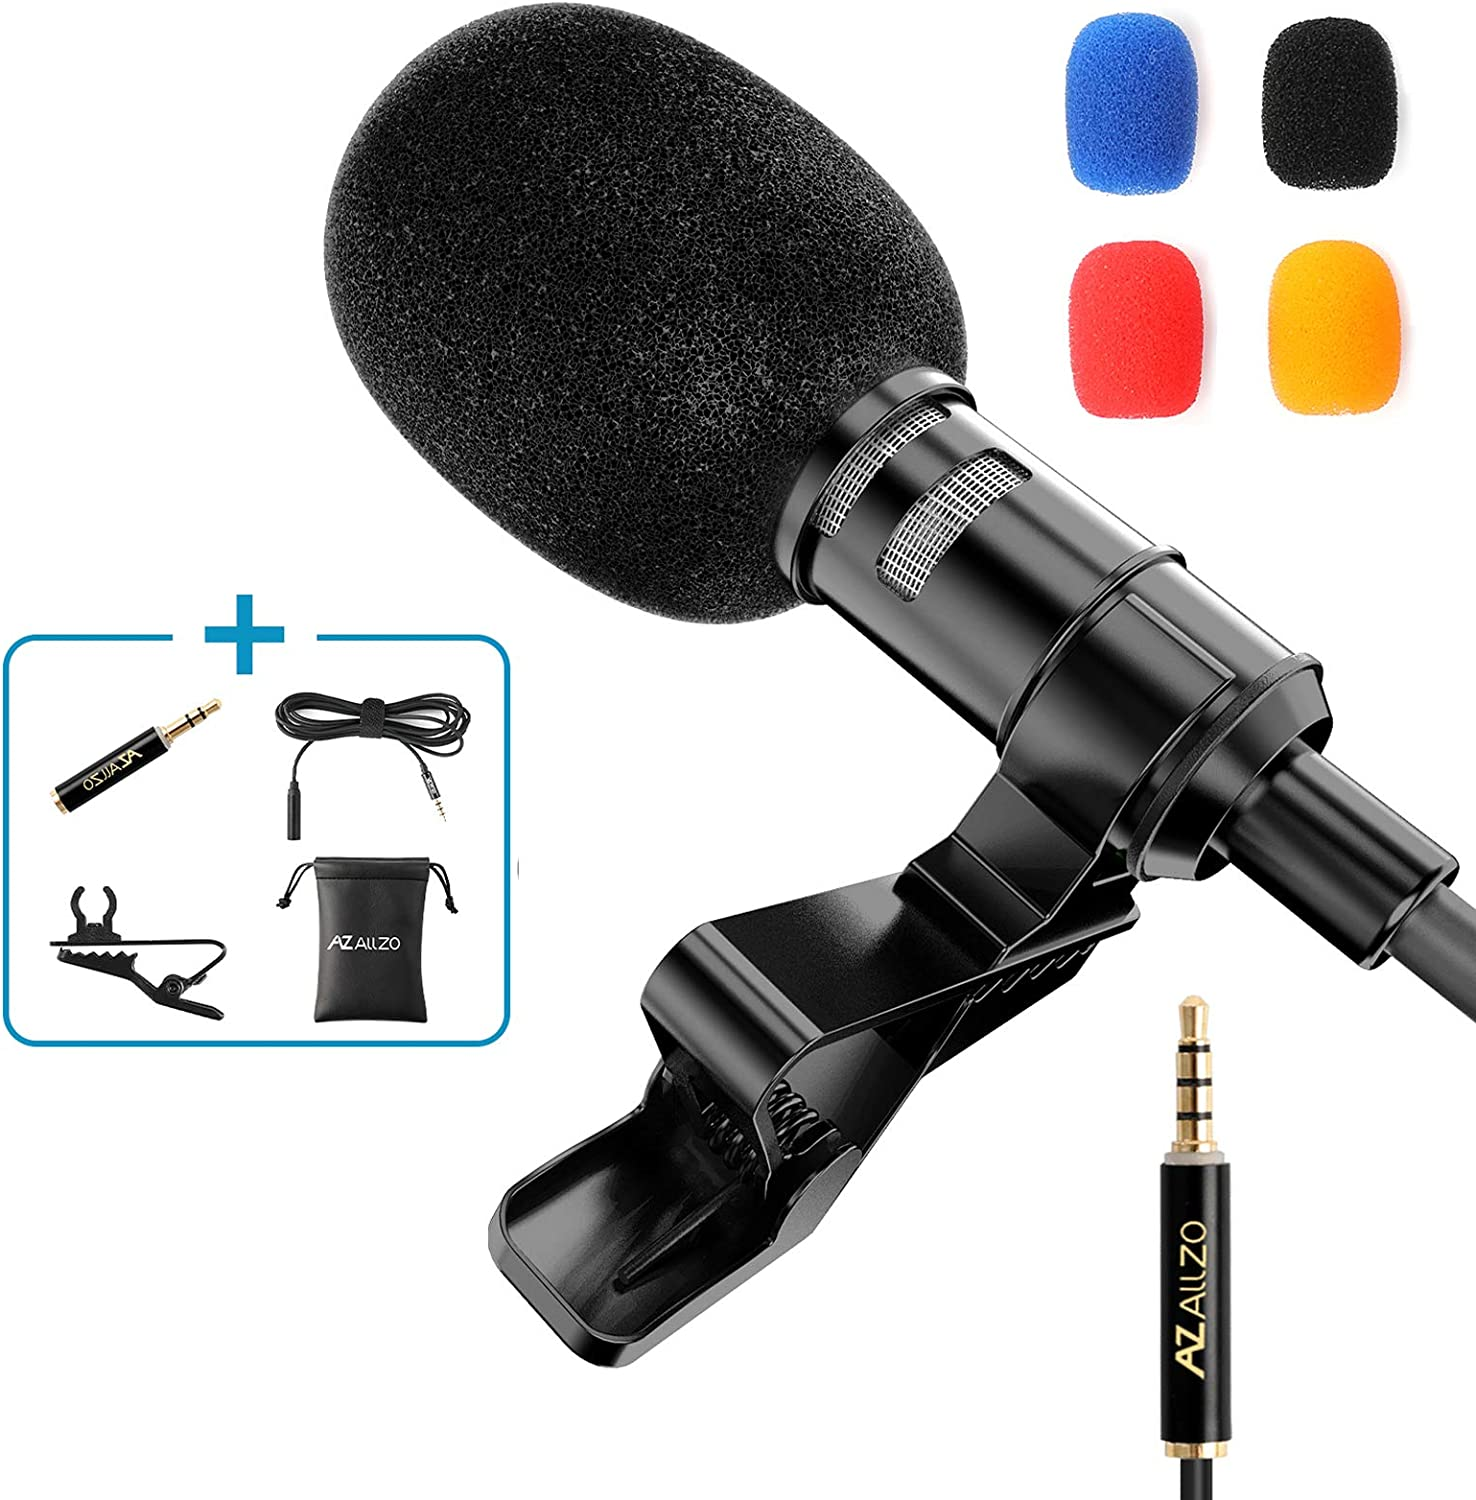 PROFESSIONAL Microphone Clip-on System Lapel Mic Condenser Recording